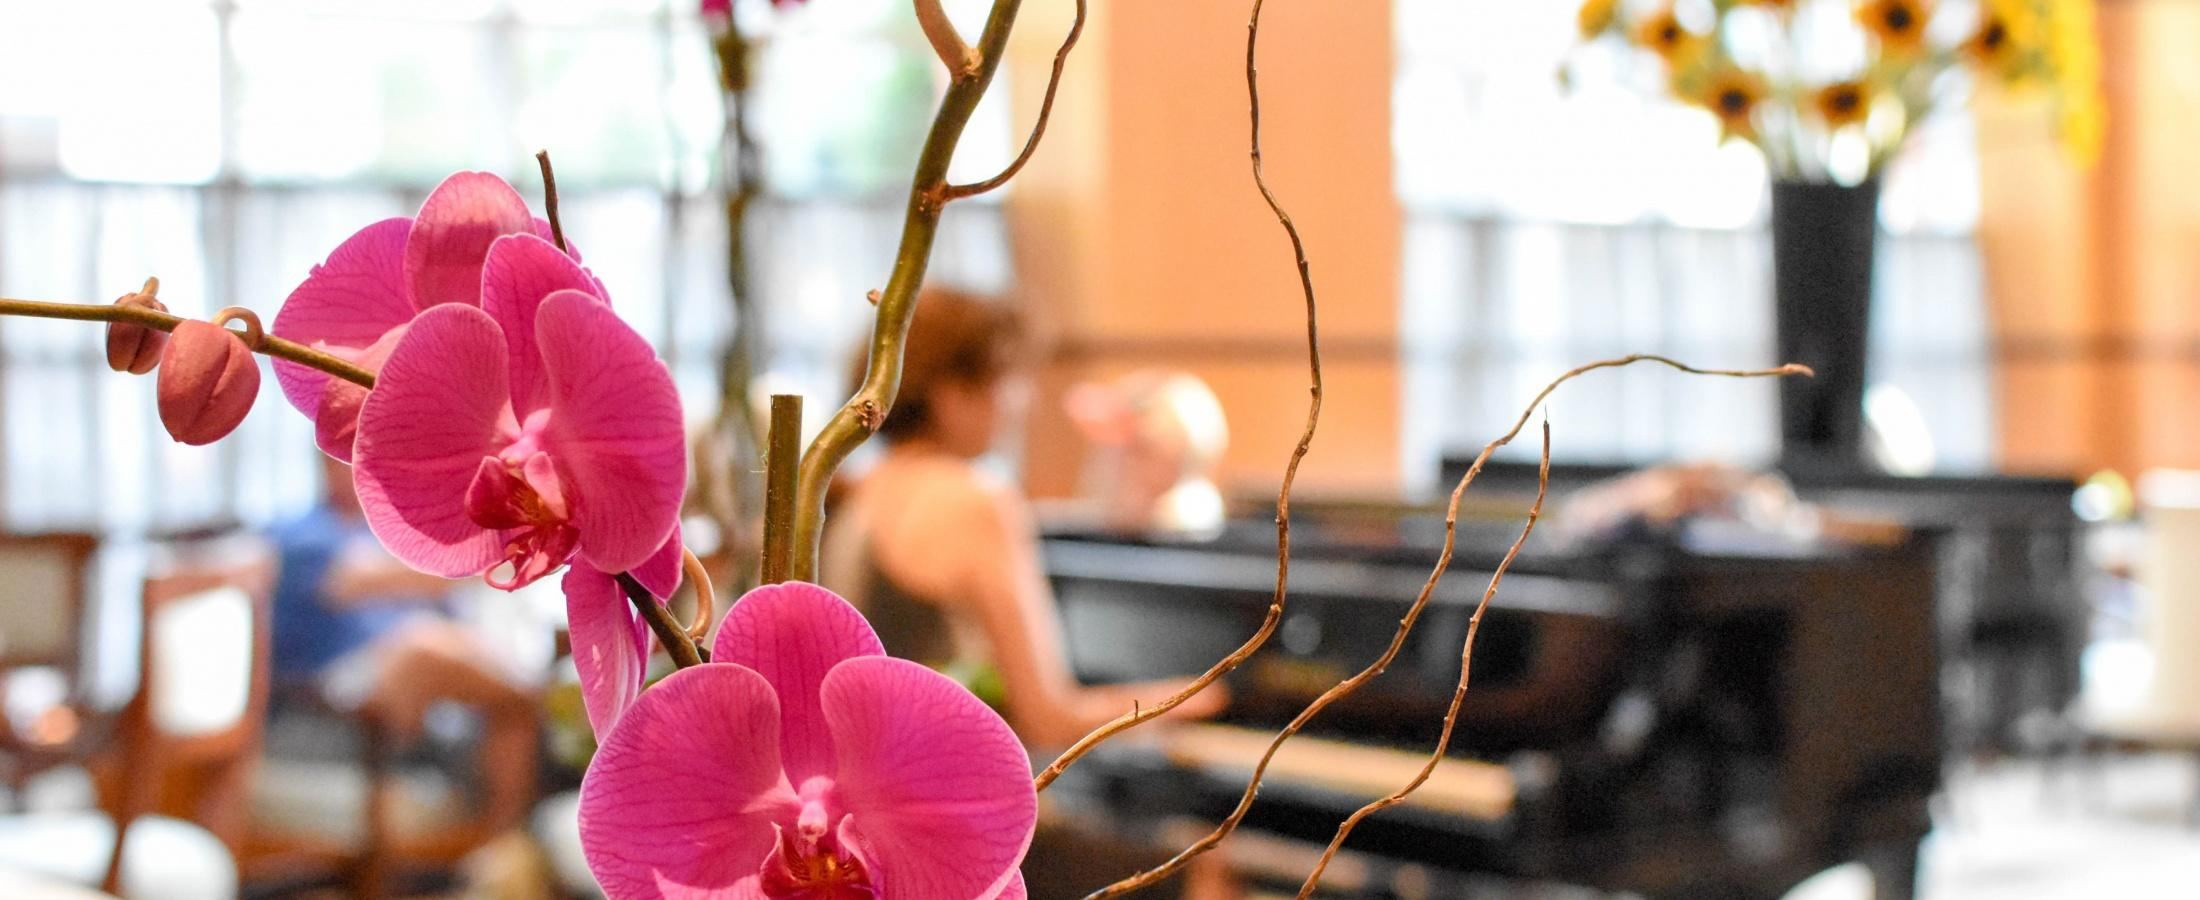 Purple orchid in front of a woman playing the piano in the grand lobby